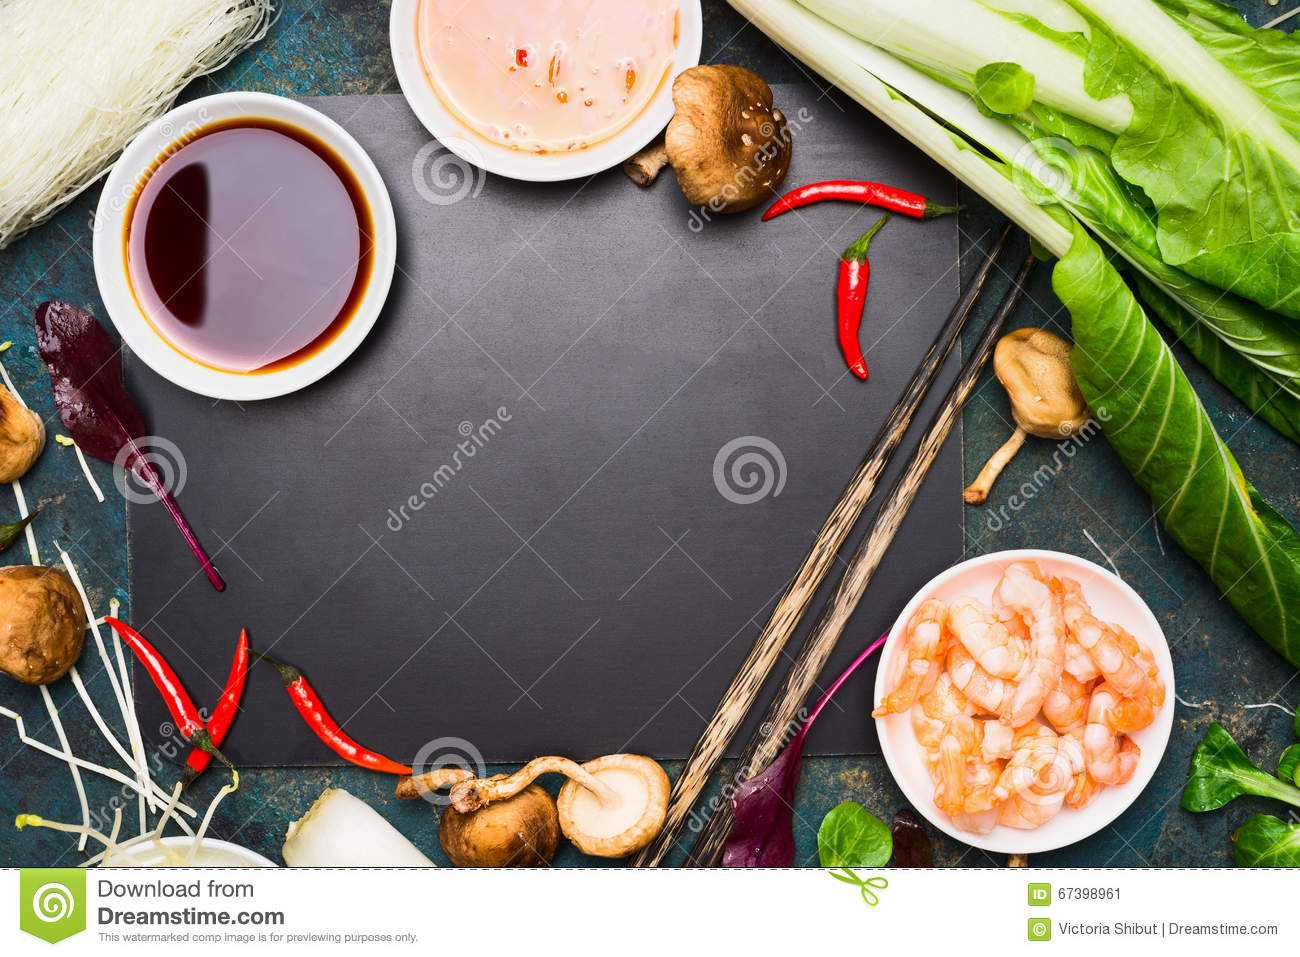 chinese food background - photo #24